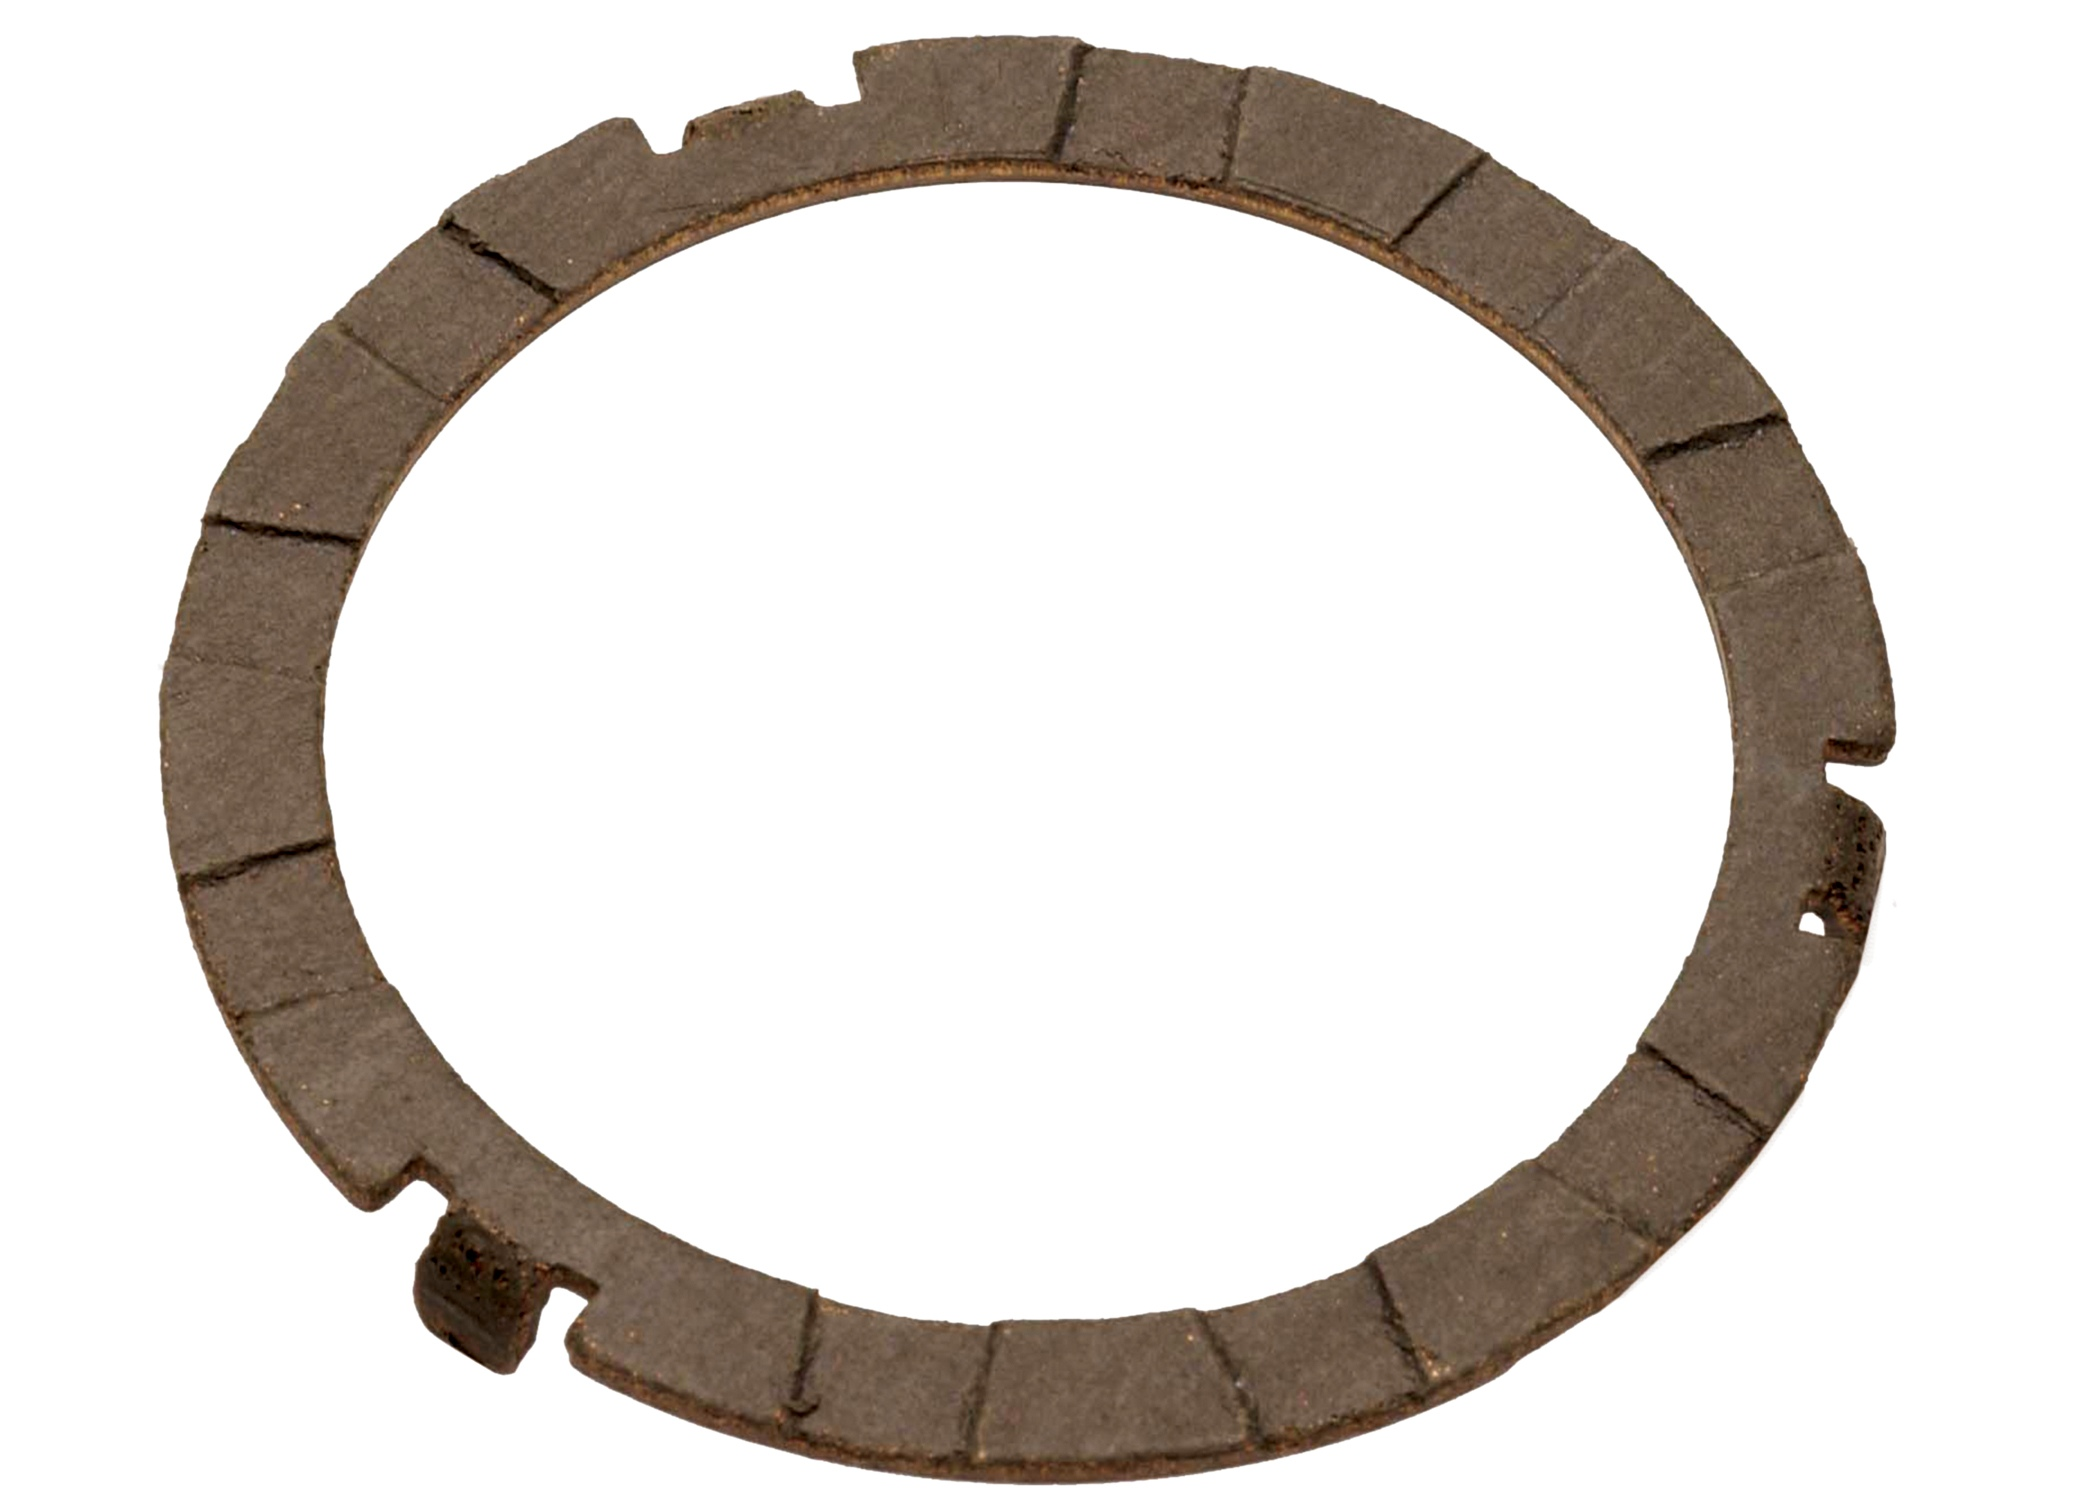 ACDELCO OE SERVICE - 4th Clutch Shaft Thrust Washer - DCB 24207063